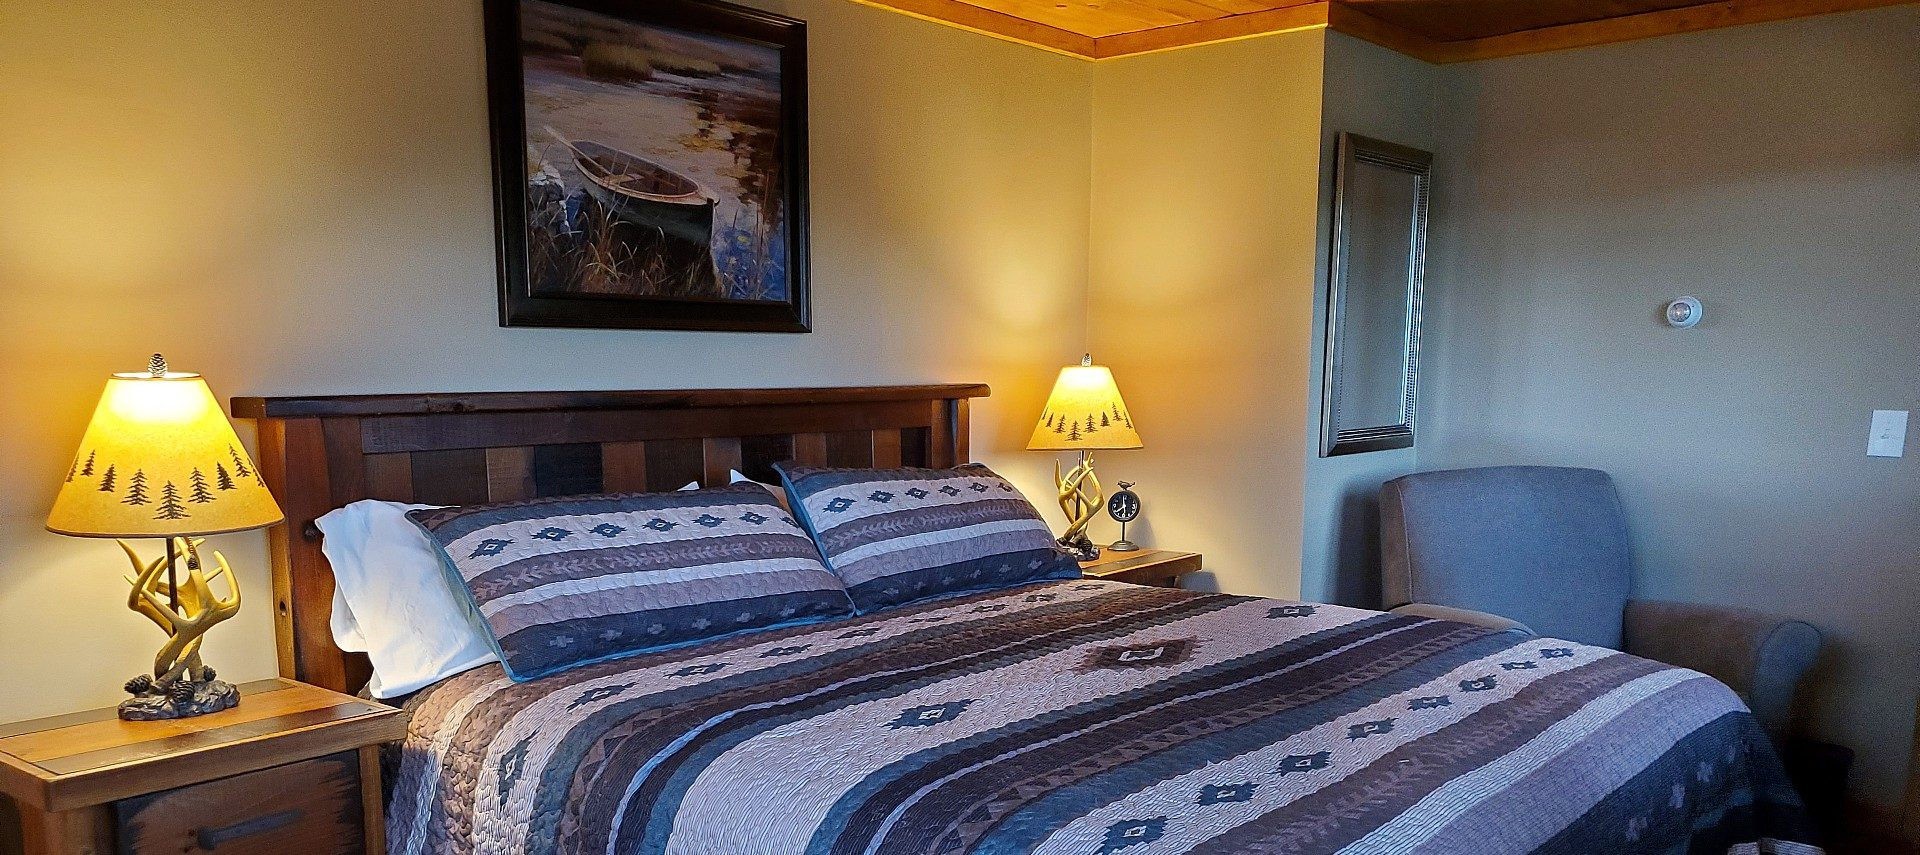 Room with a queen bed, beside tables with antler lamps and a grey sitting chair